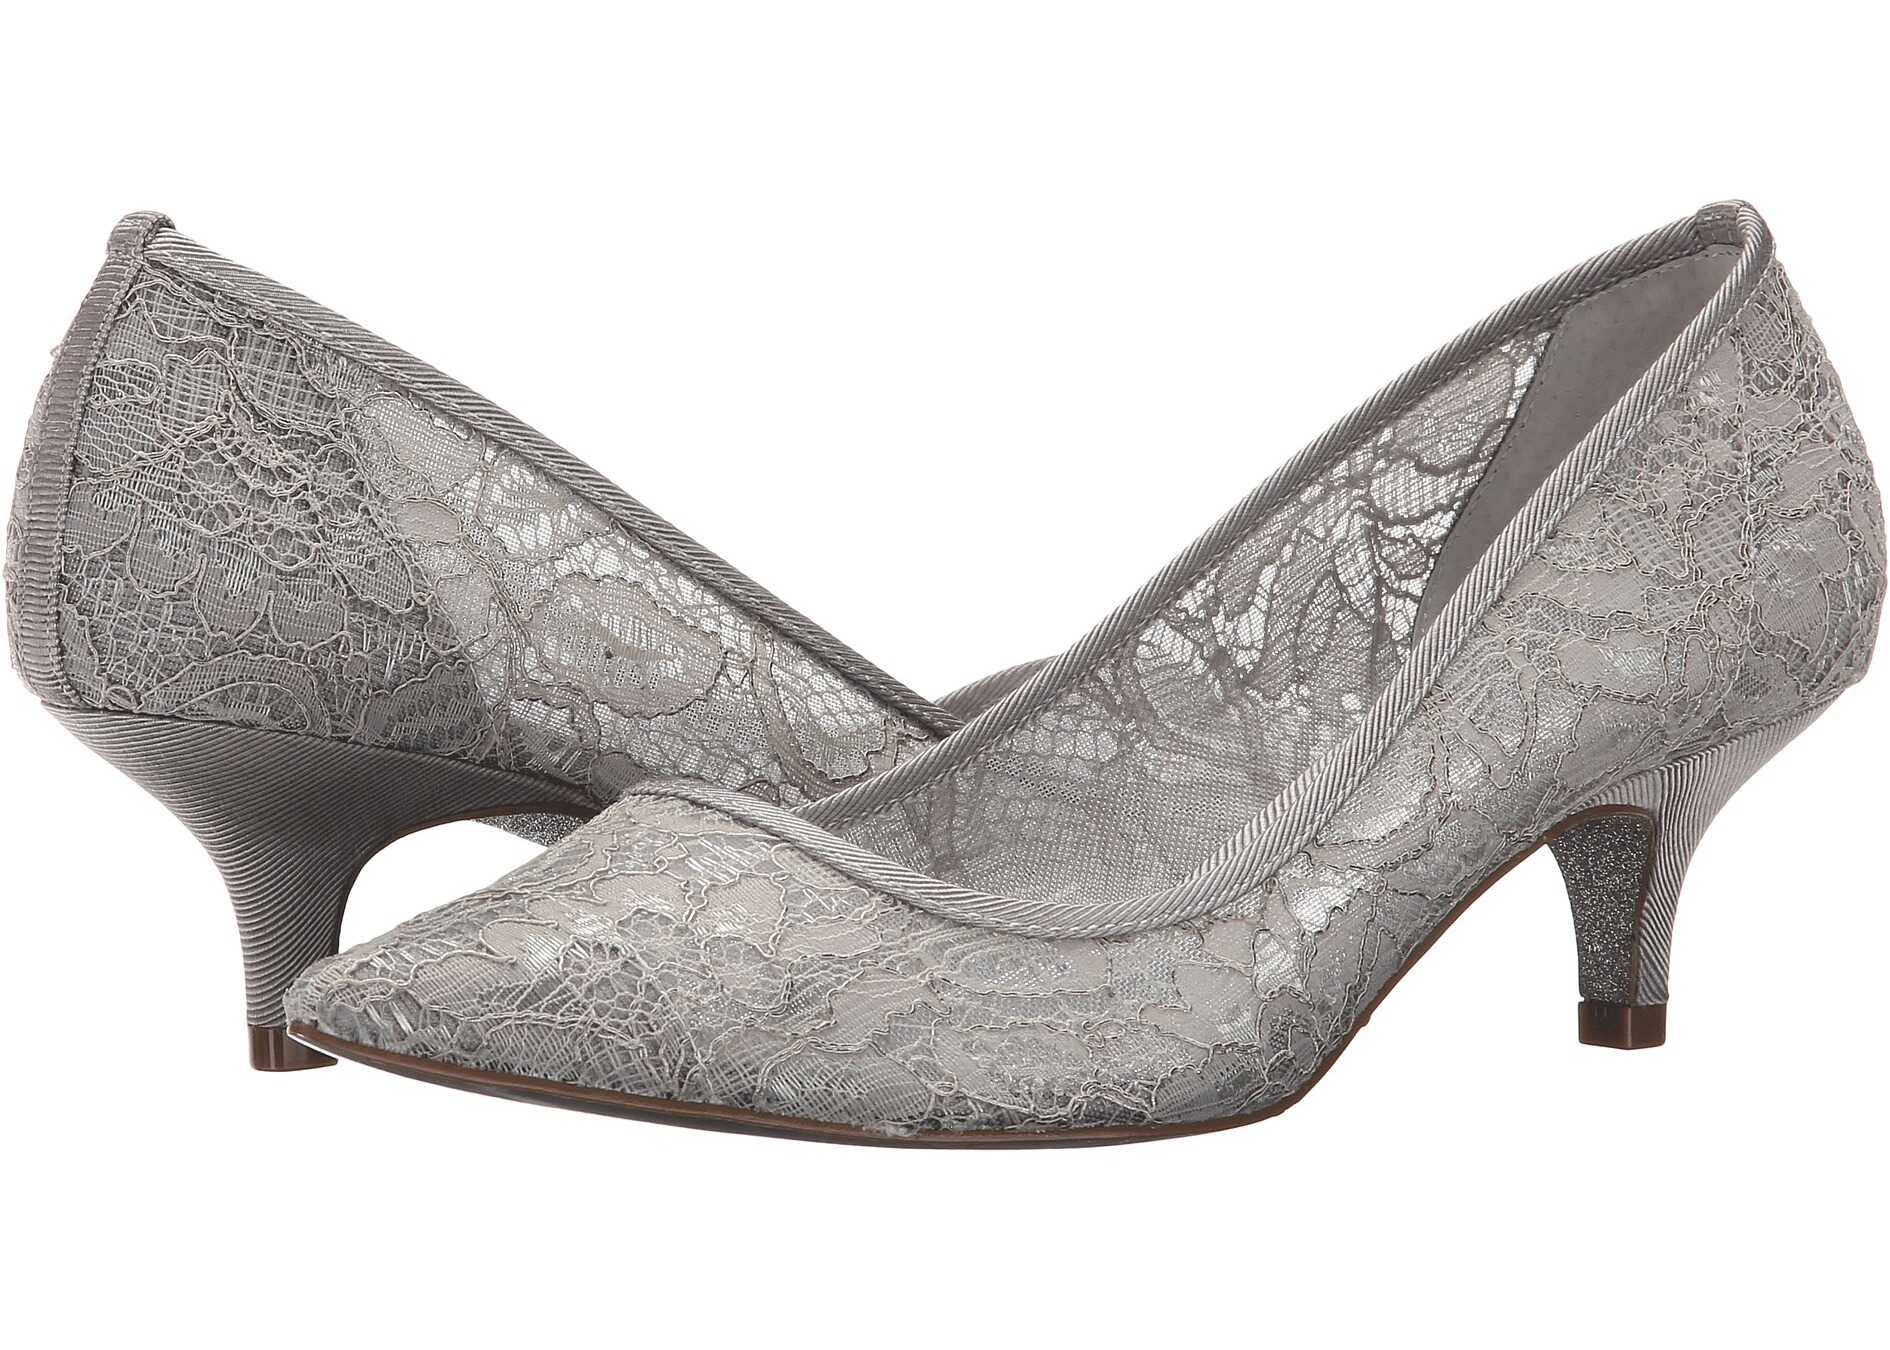 Adrianna Papell Lois Lace Silver 1890 Lace